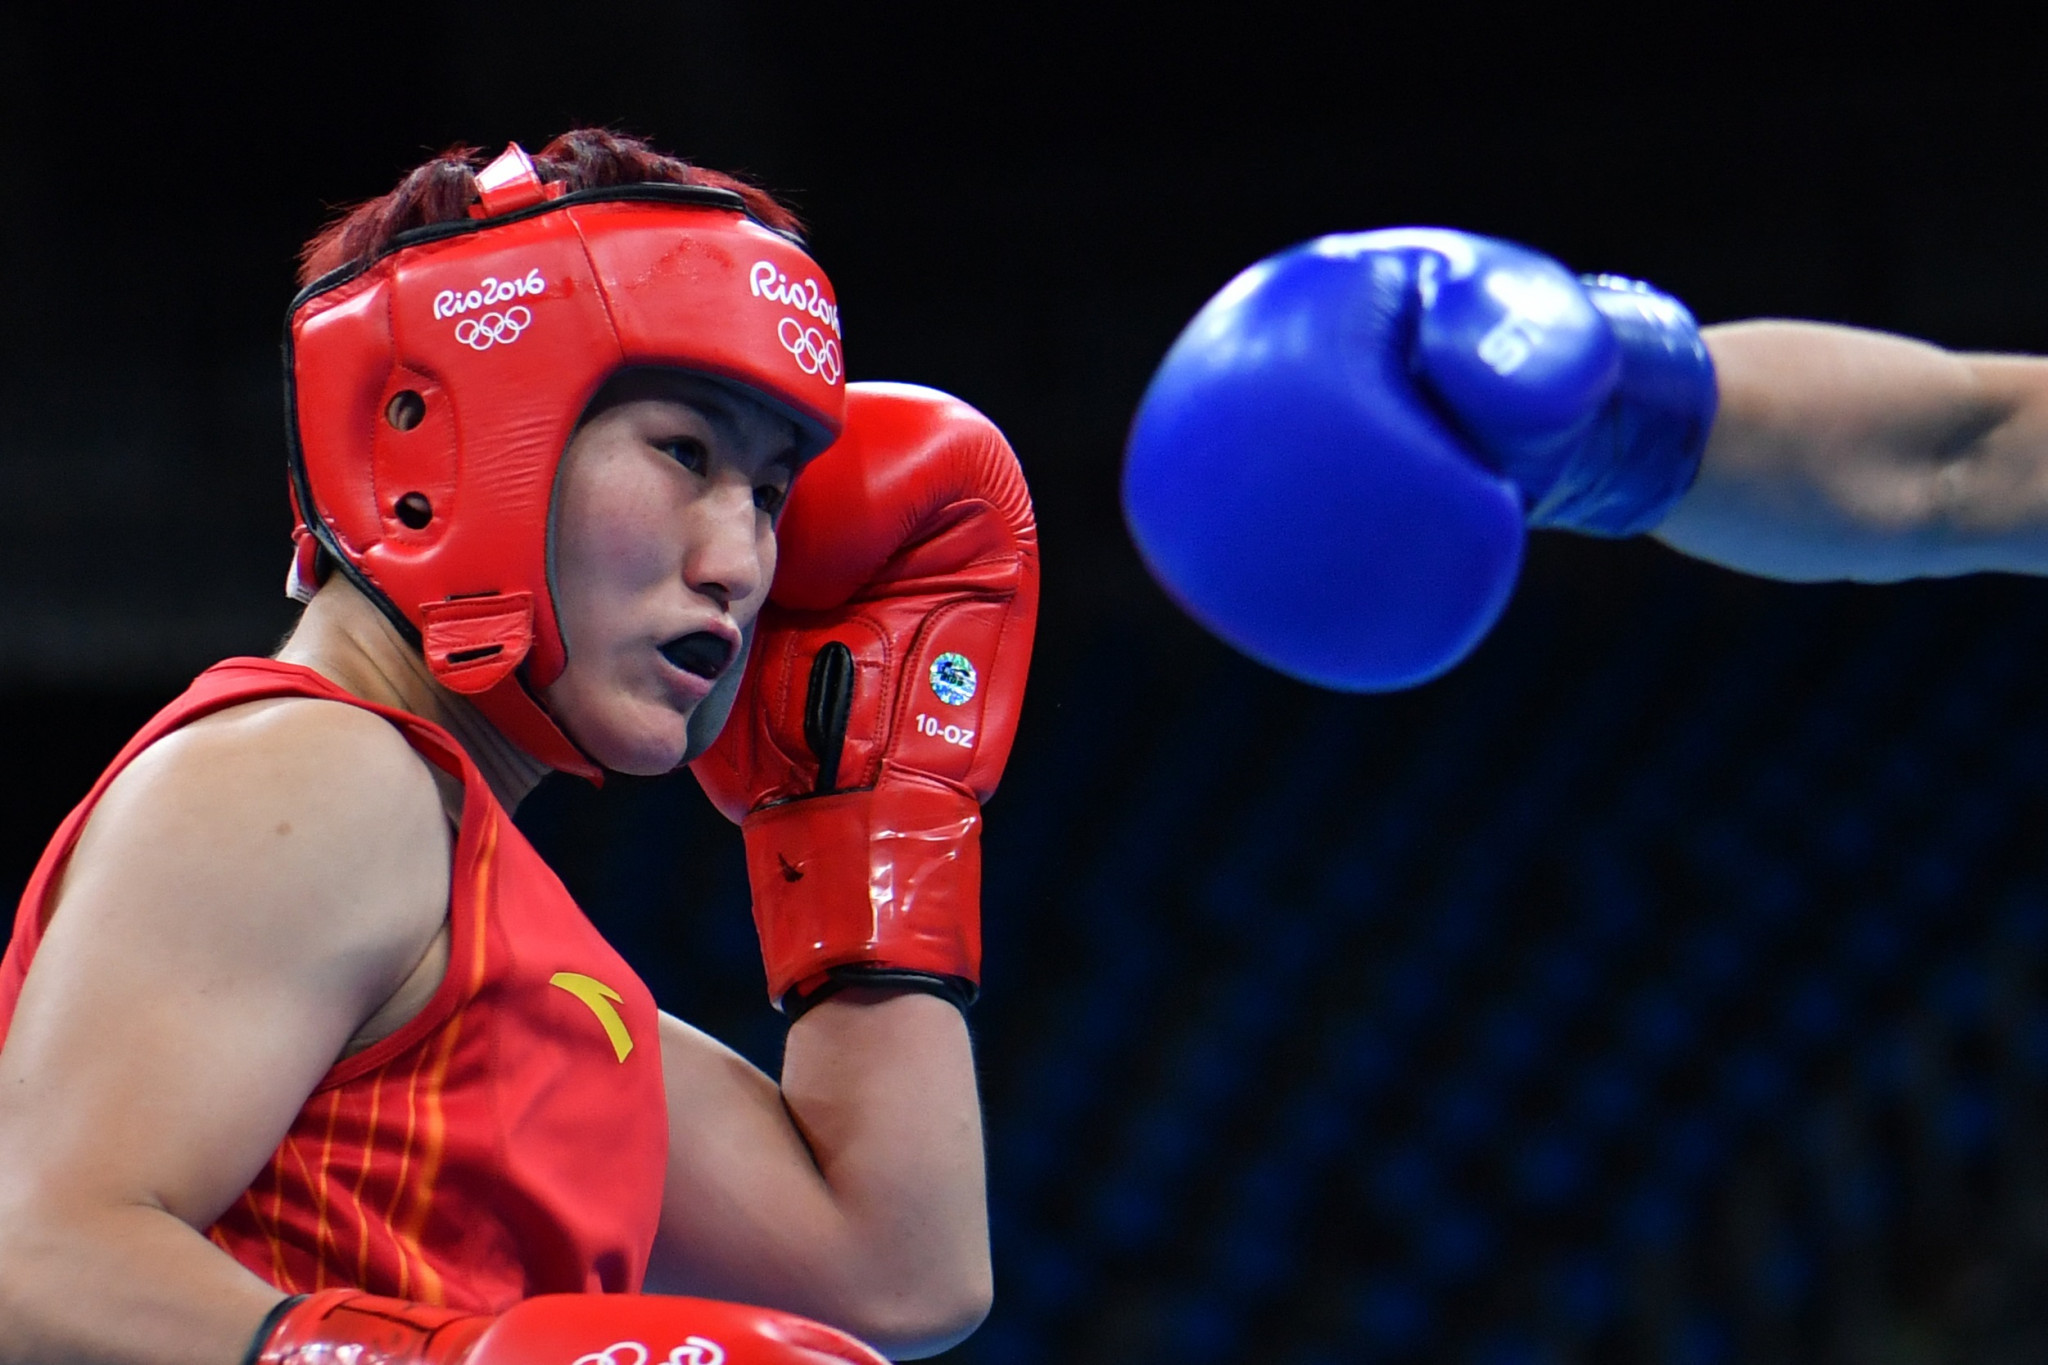 Rio 2016 silver medallist Yin comes through hard-fought opener at Asian Women's Boxing Championships